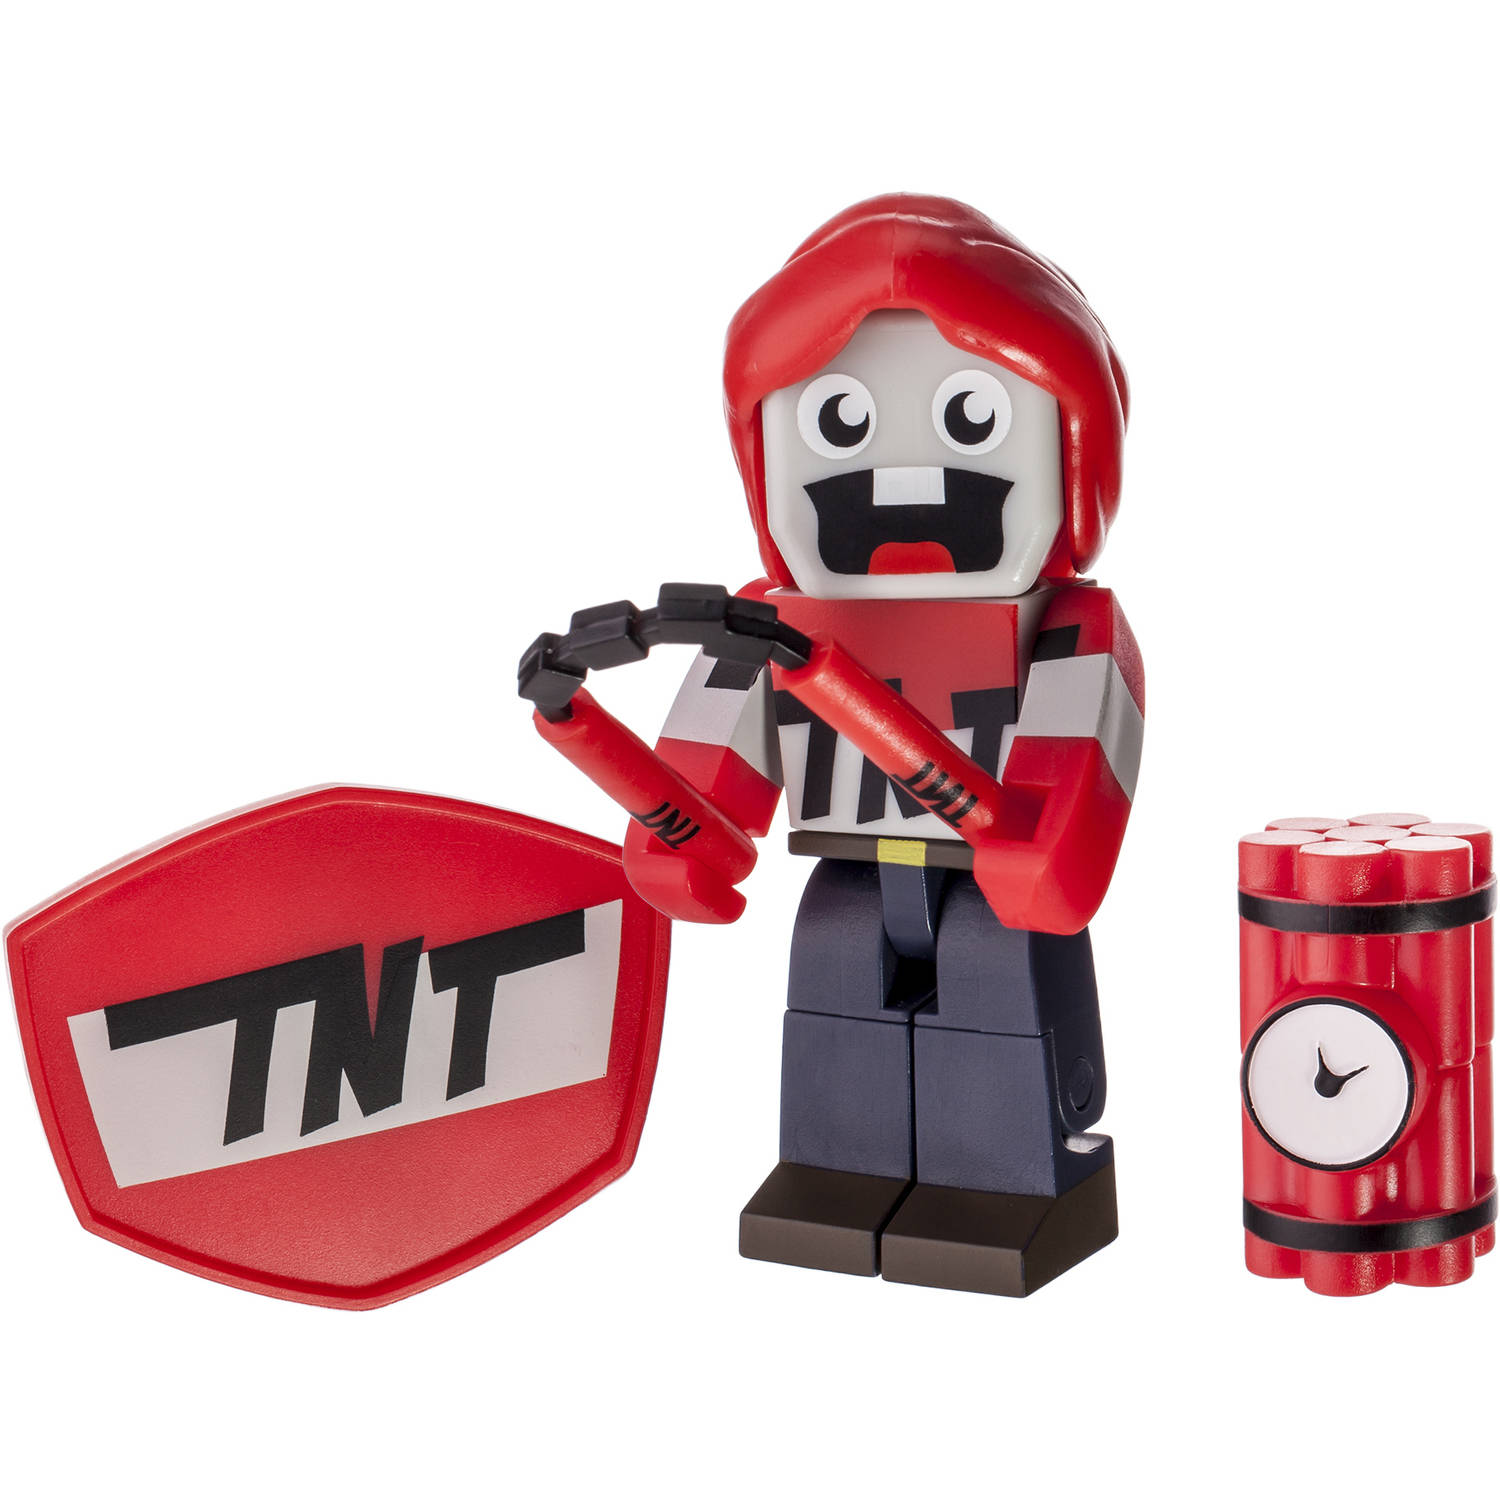 Tube Heroes Exploding TNT with Accessories